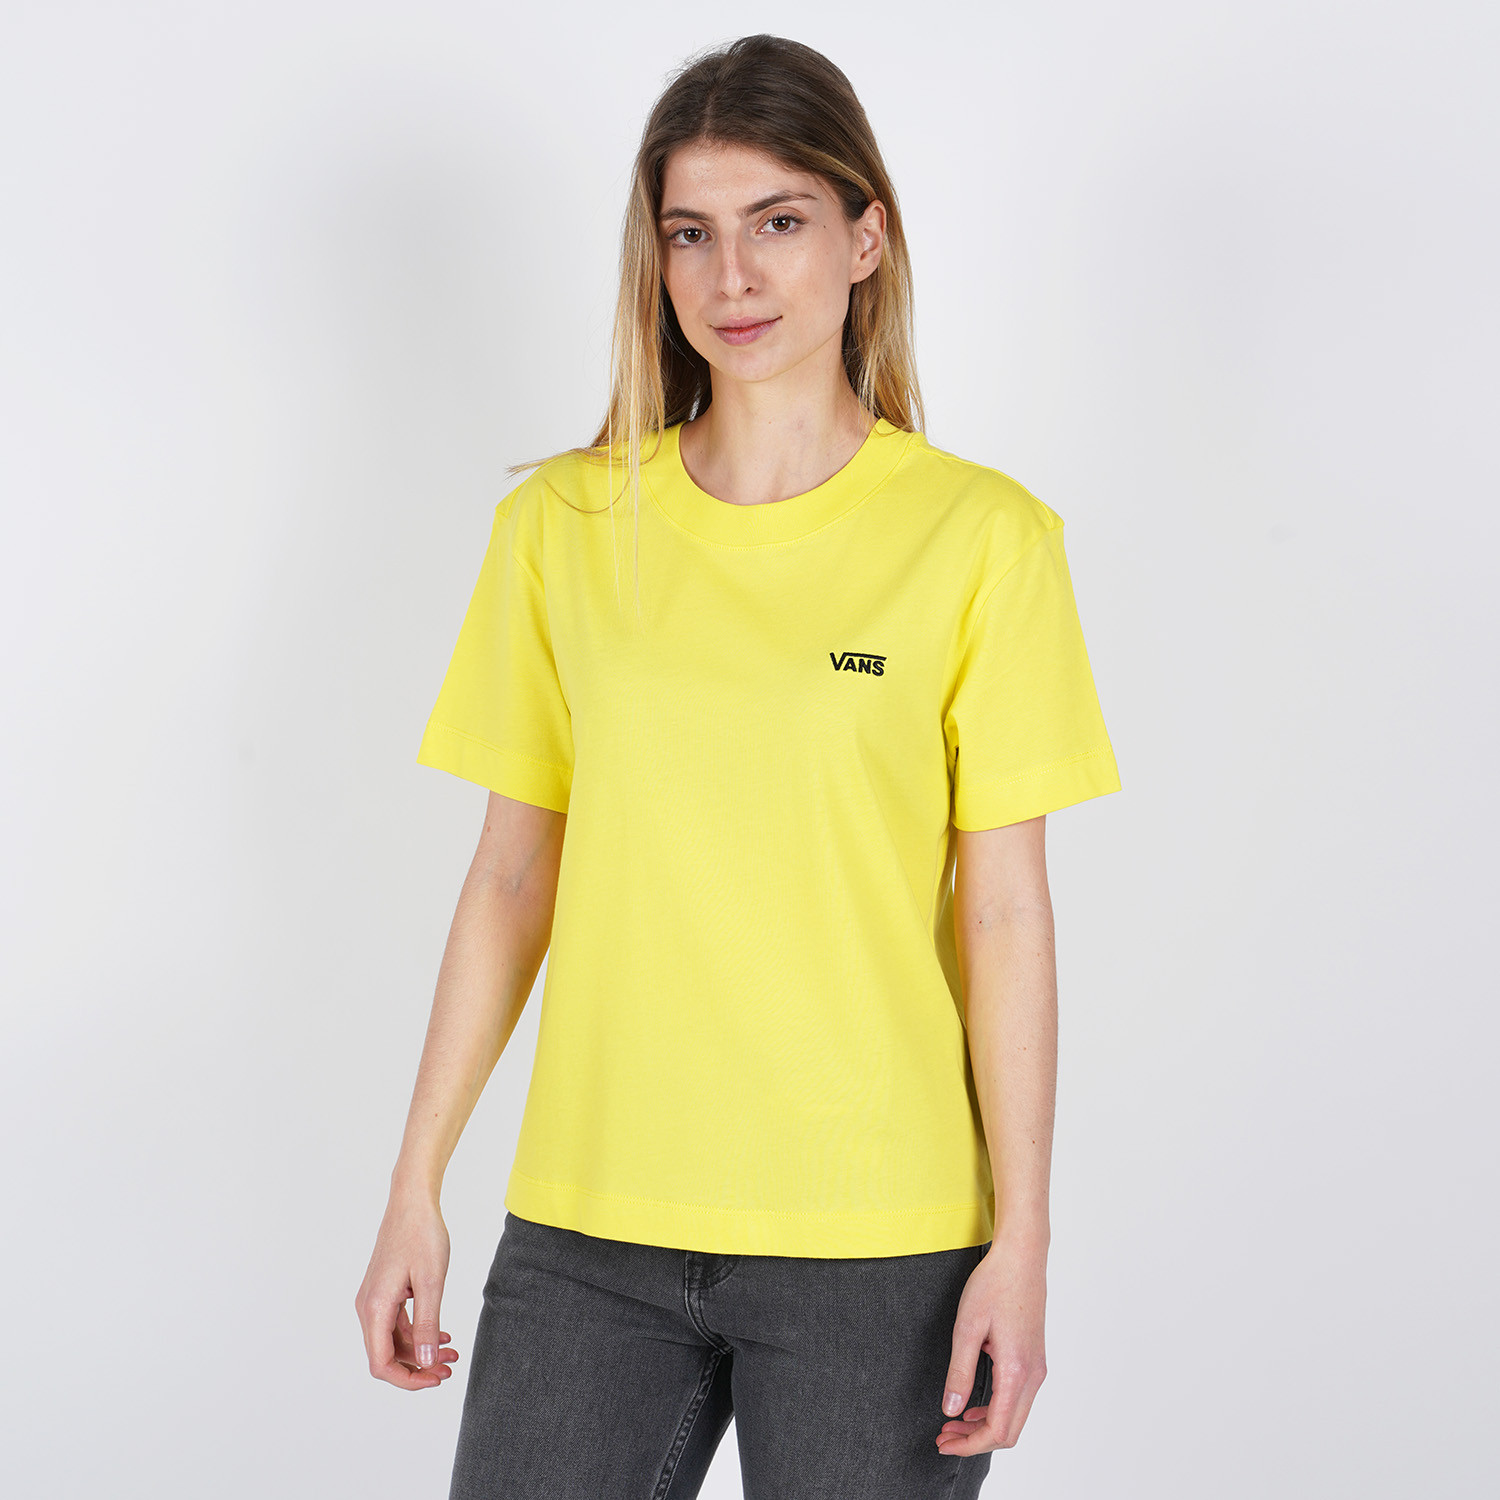 Vans Junior V Boxy Women's T-Shirt (9000049124_38311)